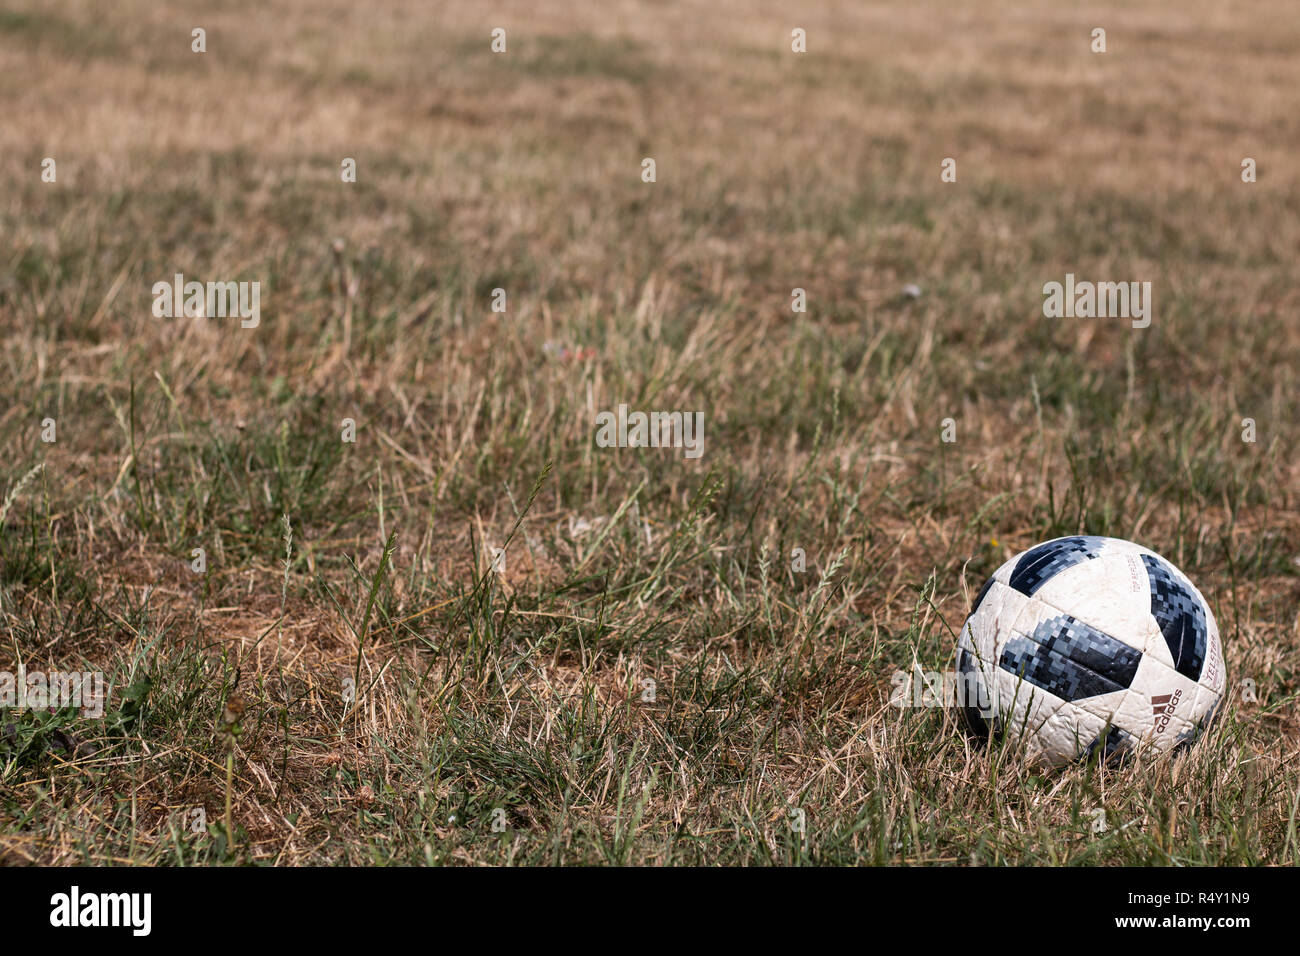 Lost football during summer 2018 - Stock Image